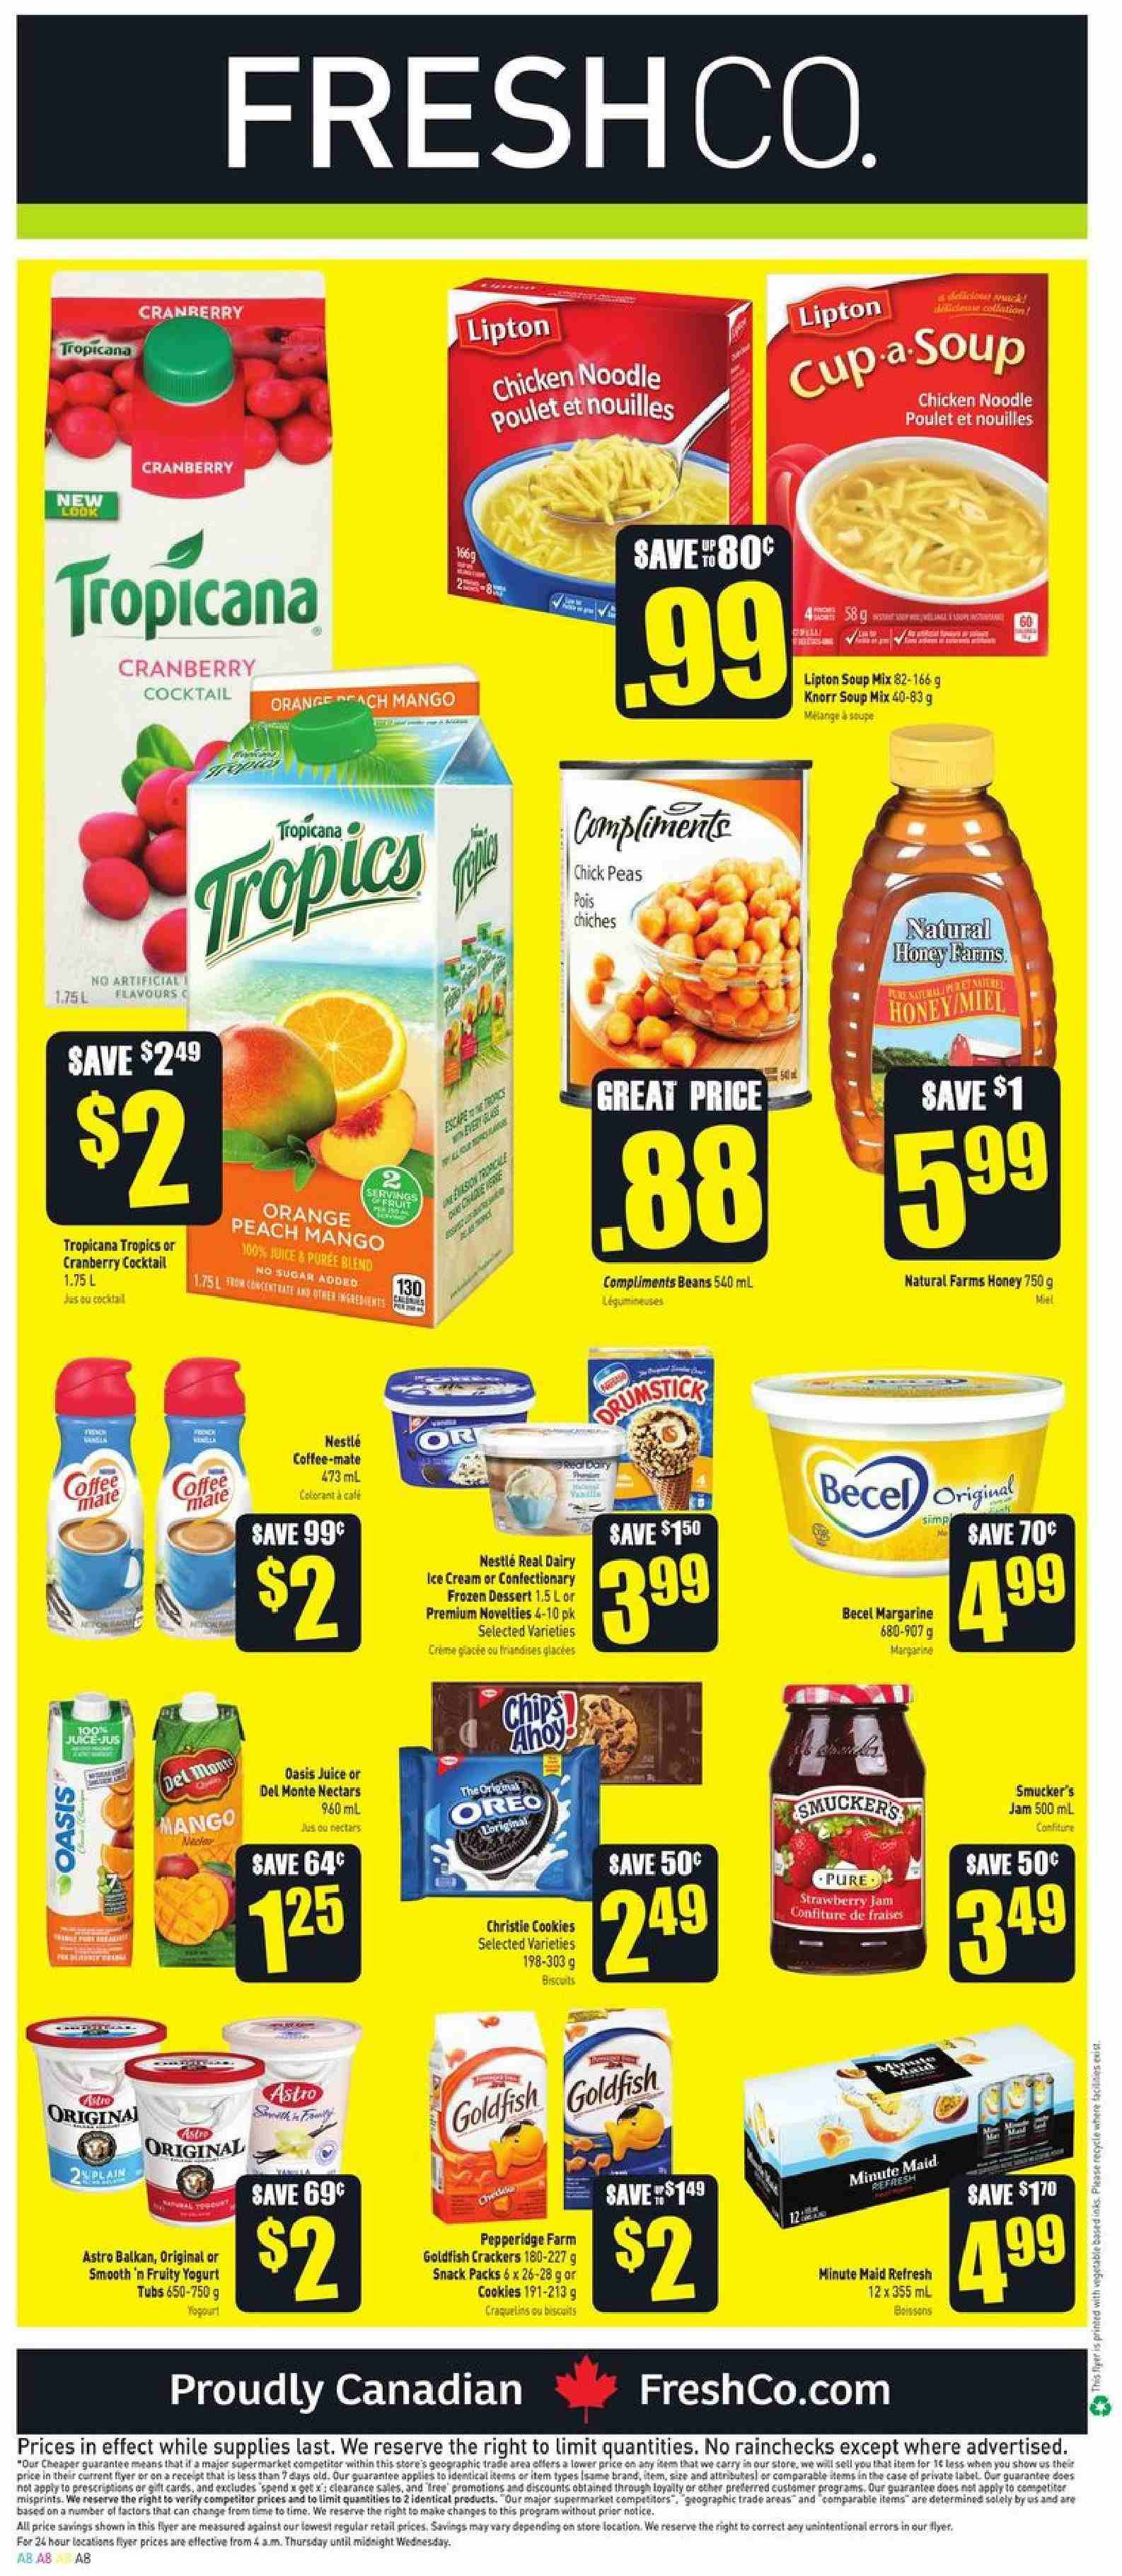 FreshCo. Flyer  - April 04, 2019 - April 10, 2019. Page 8.